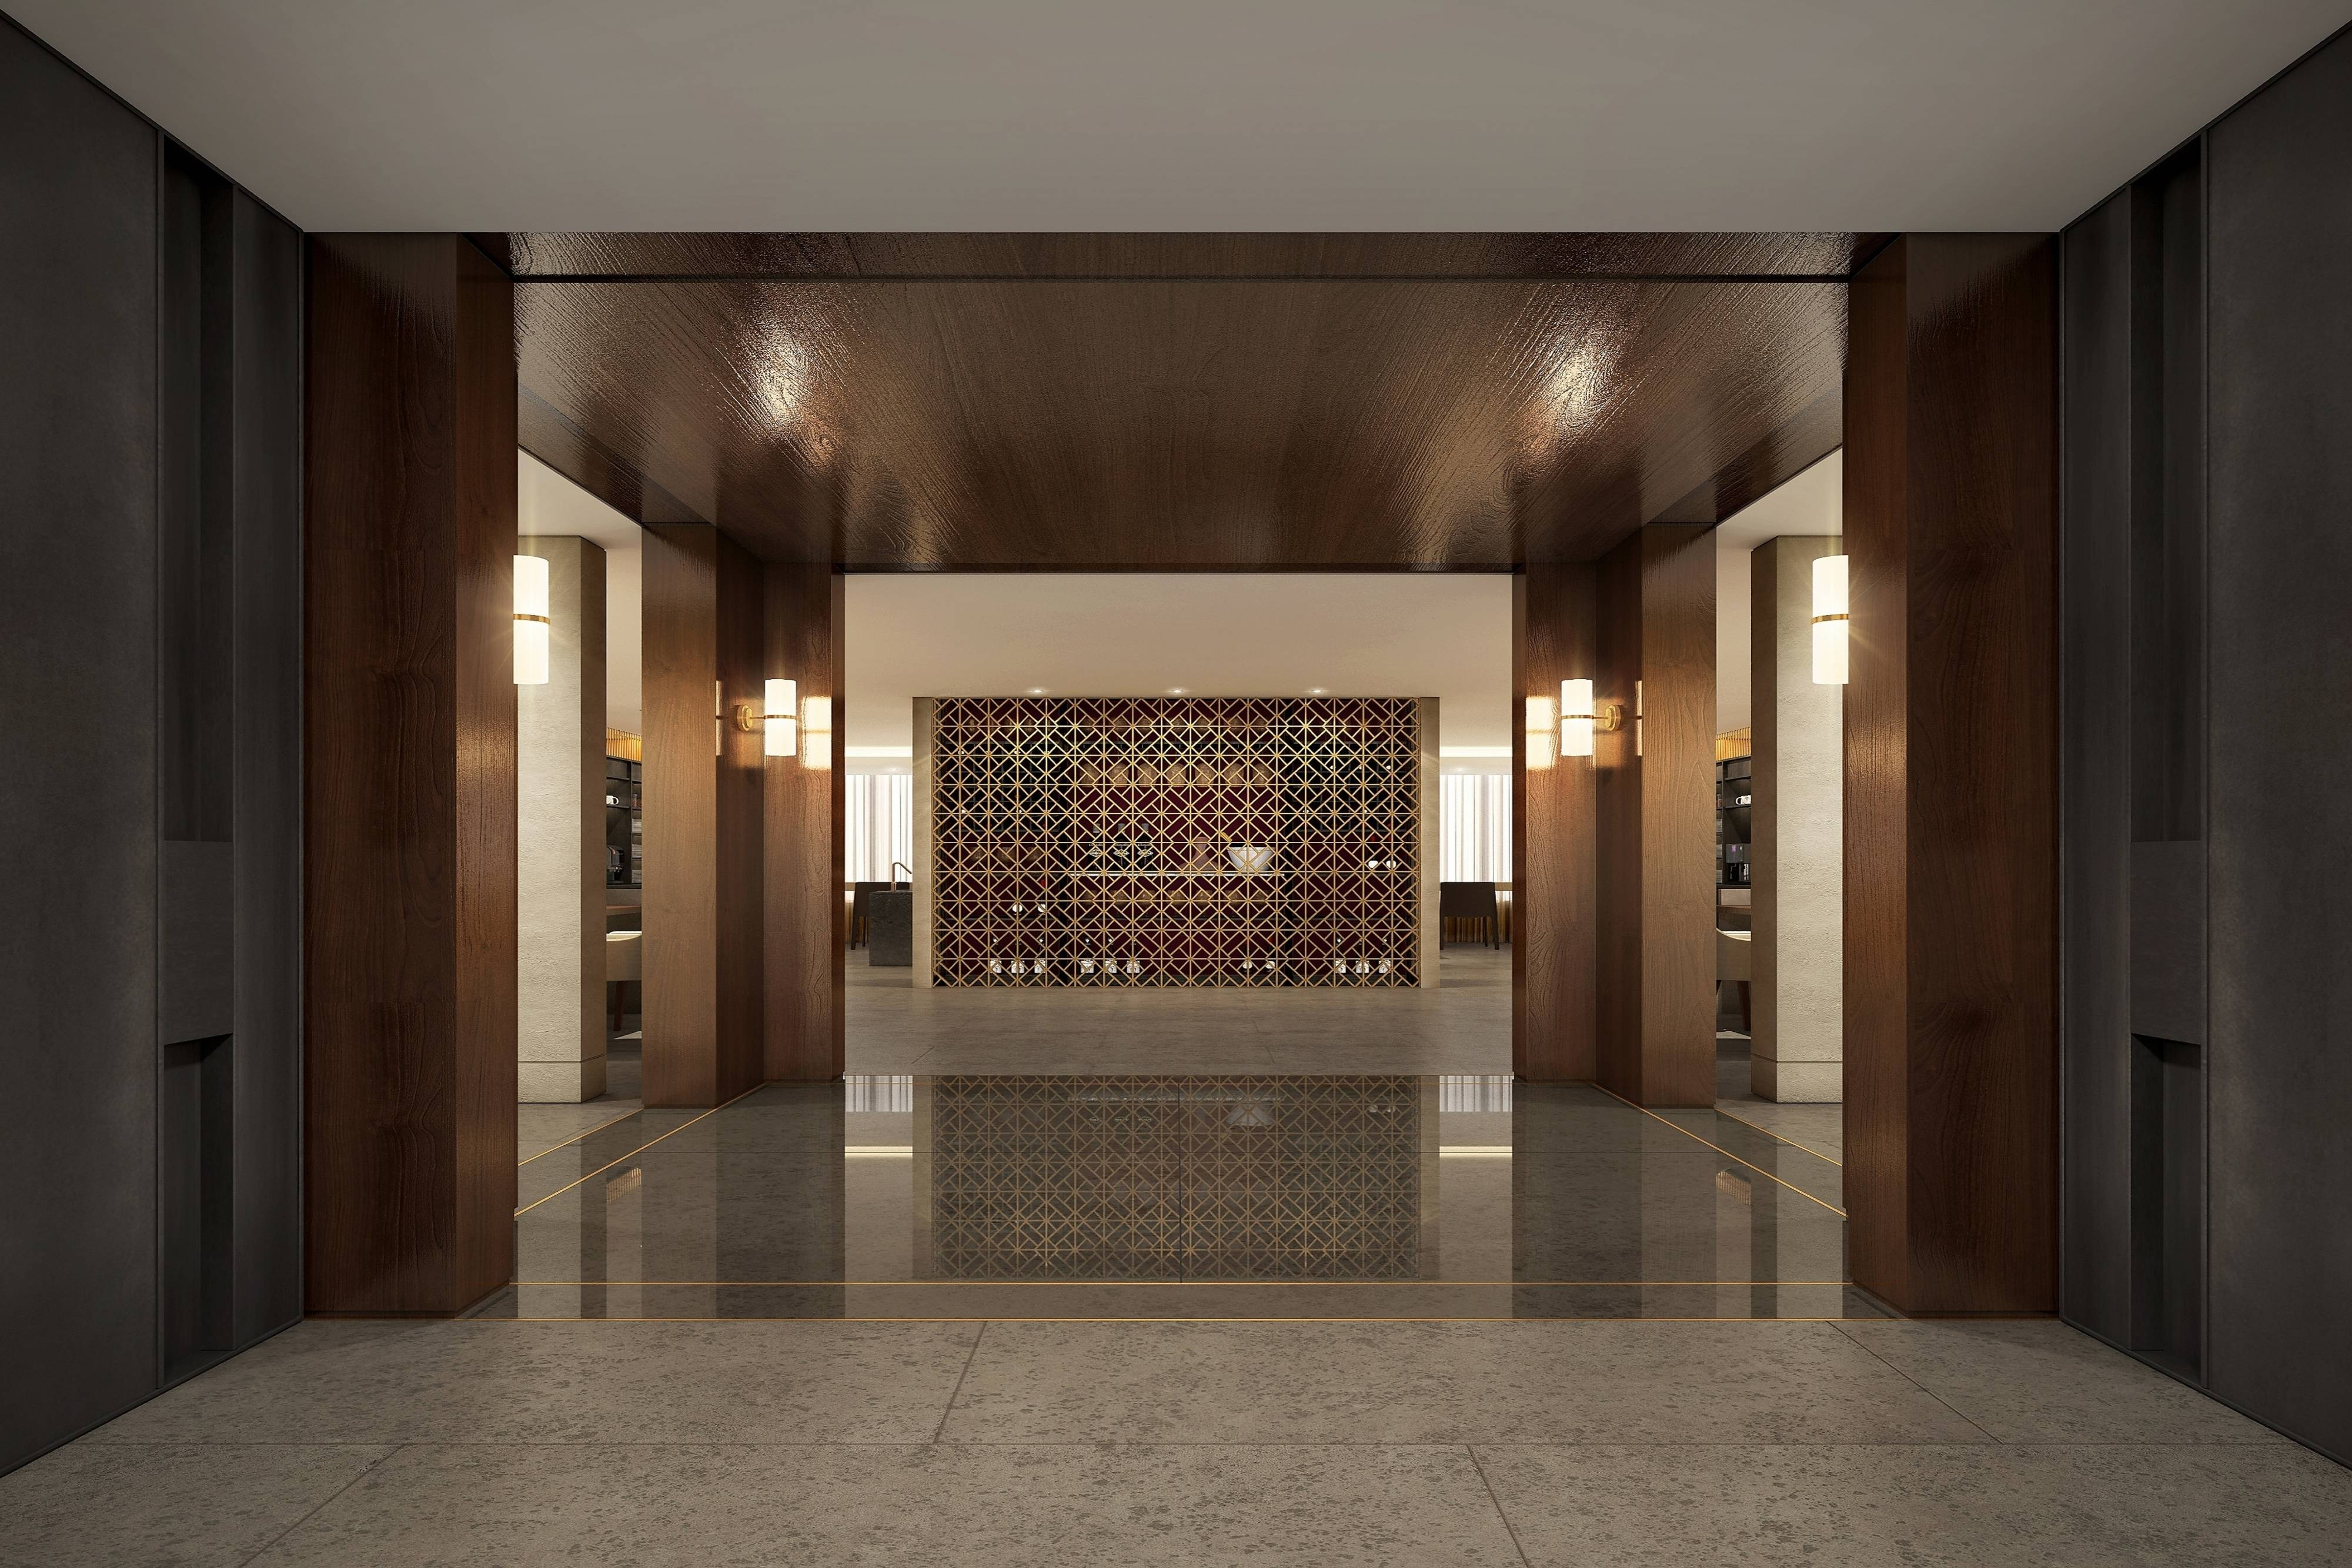 Executive Lounge - Entrance